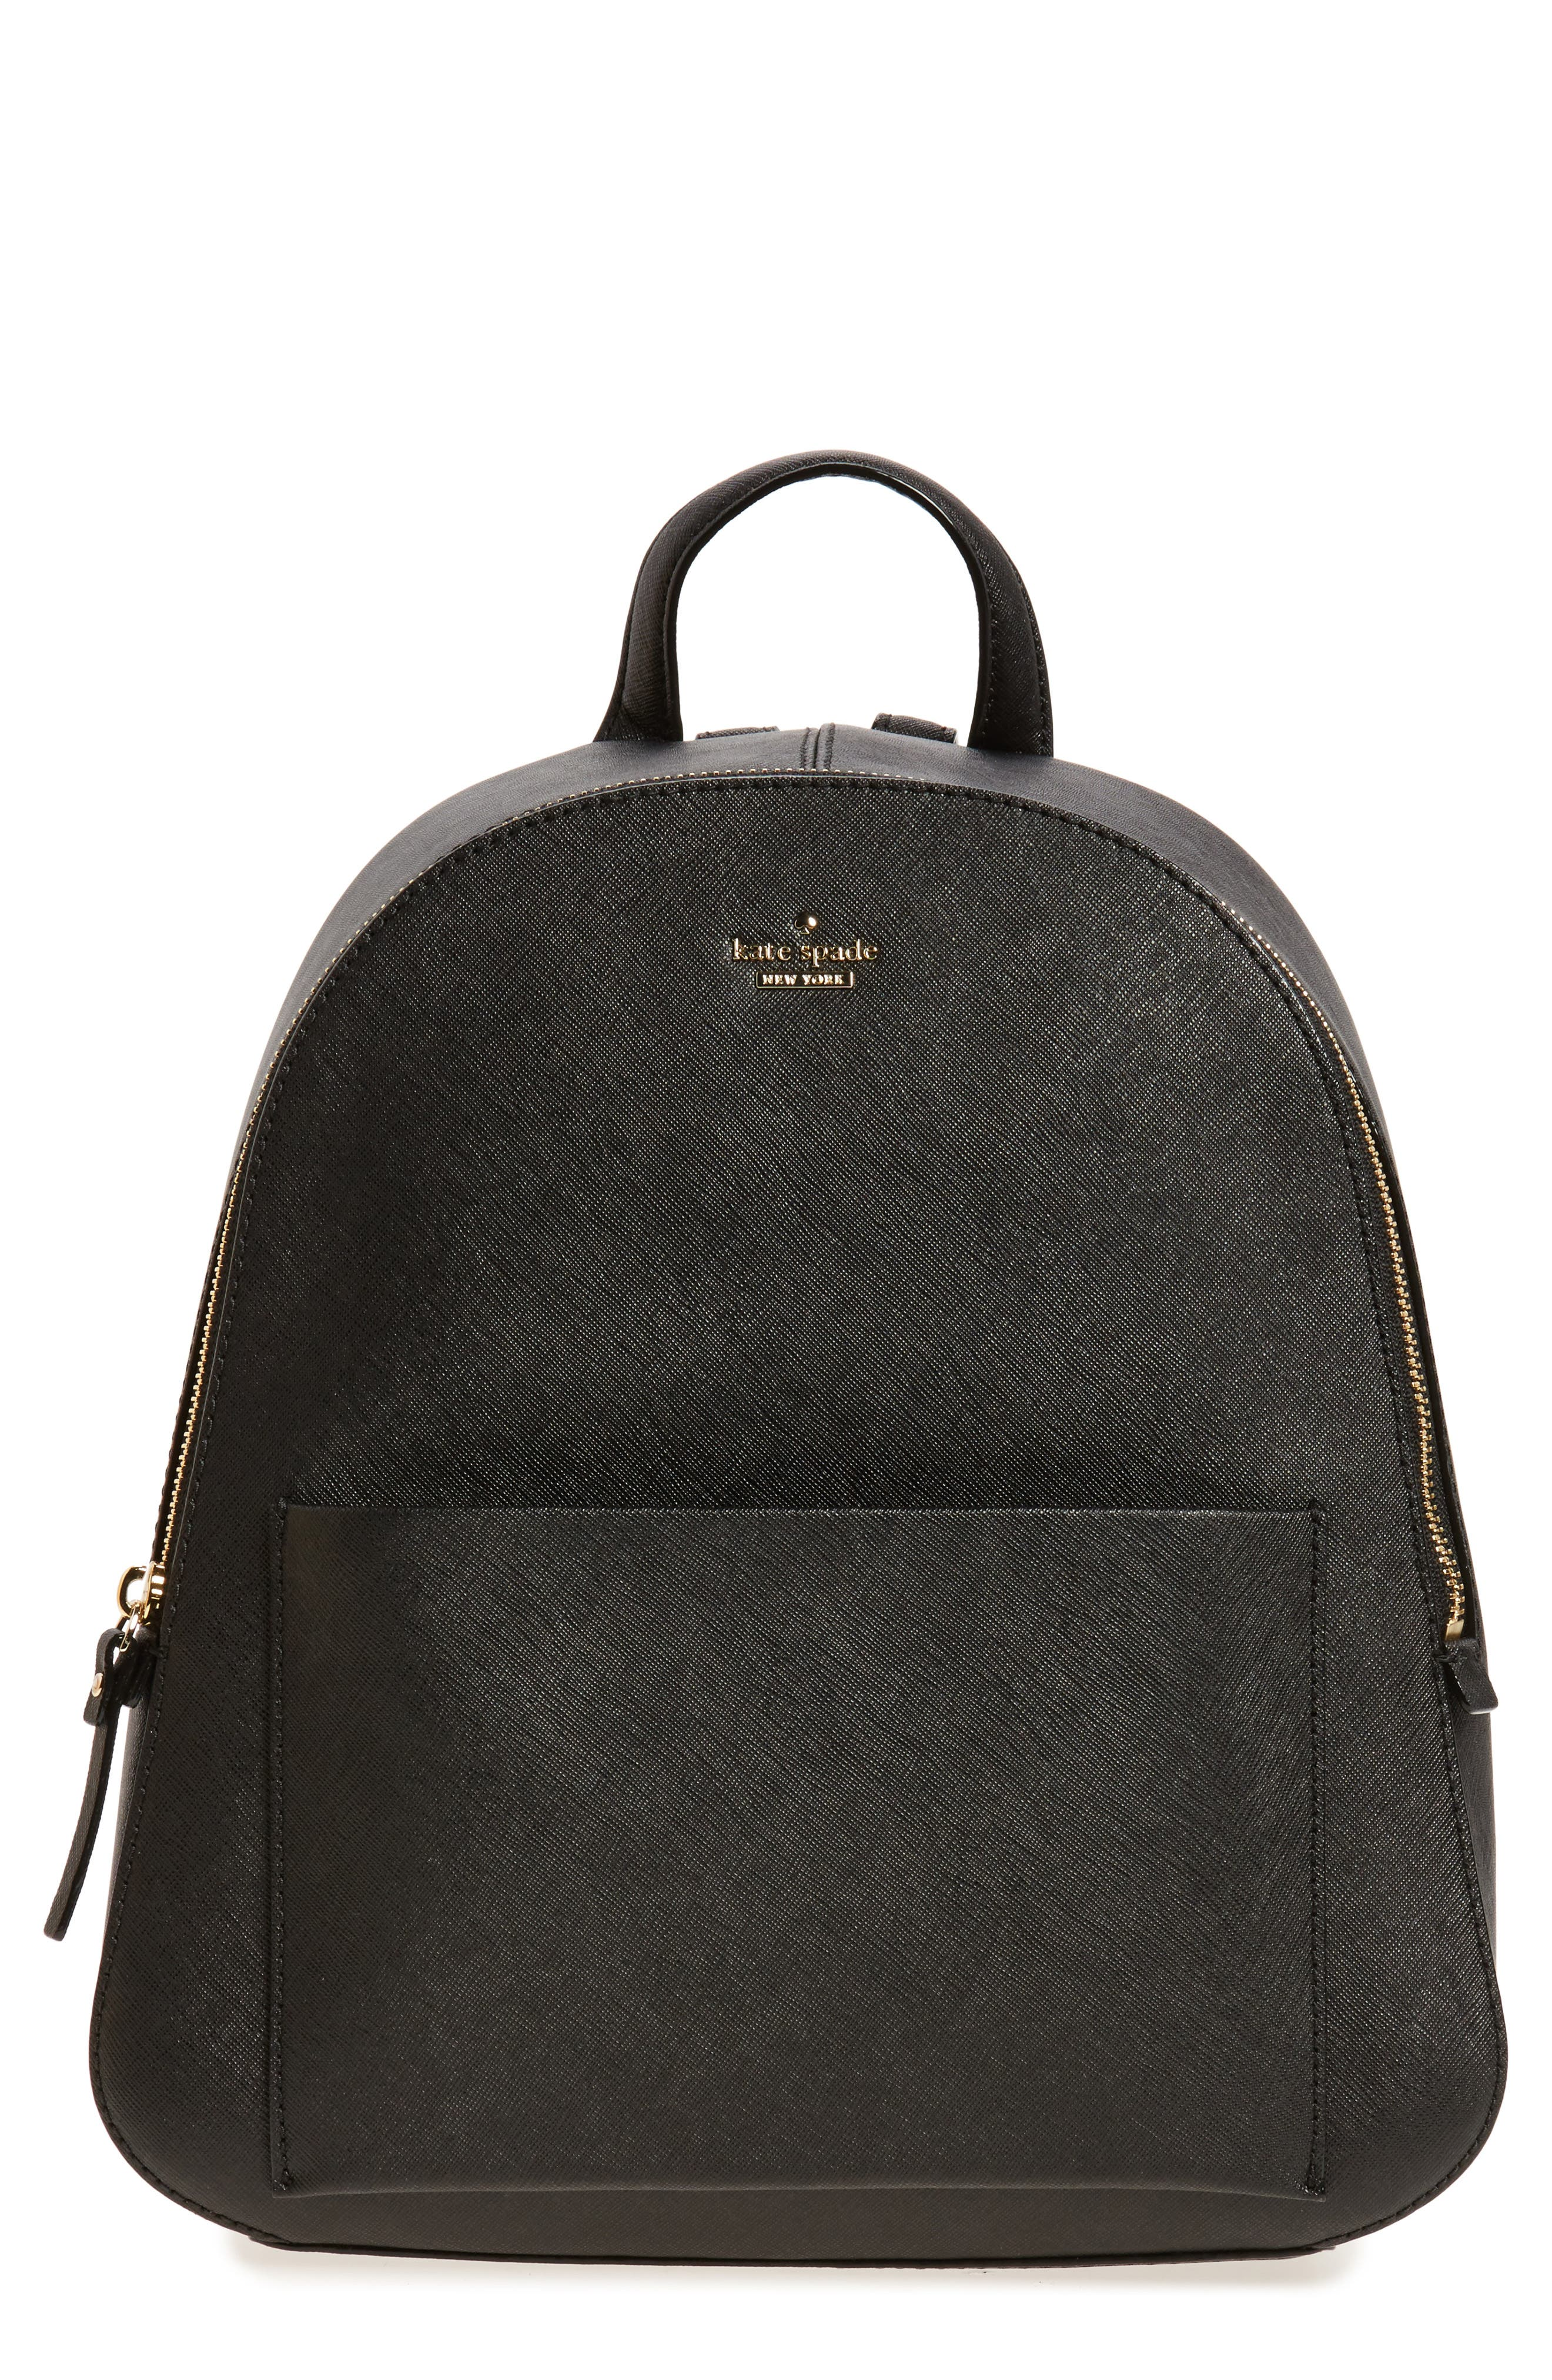 Alternate Image 1 Selected - kate spade new york cameron street marisole leather backpack